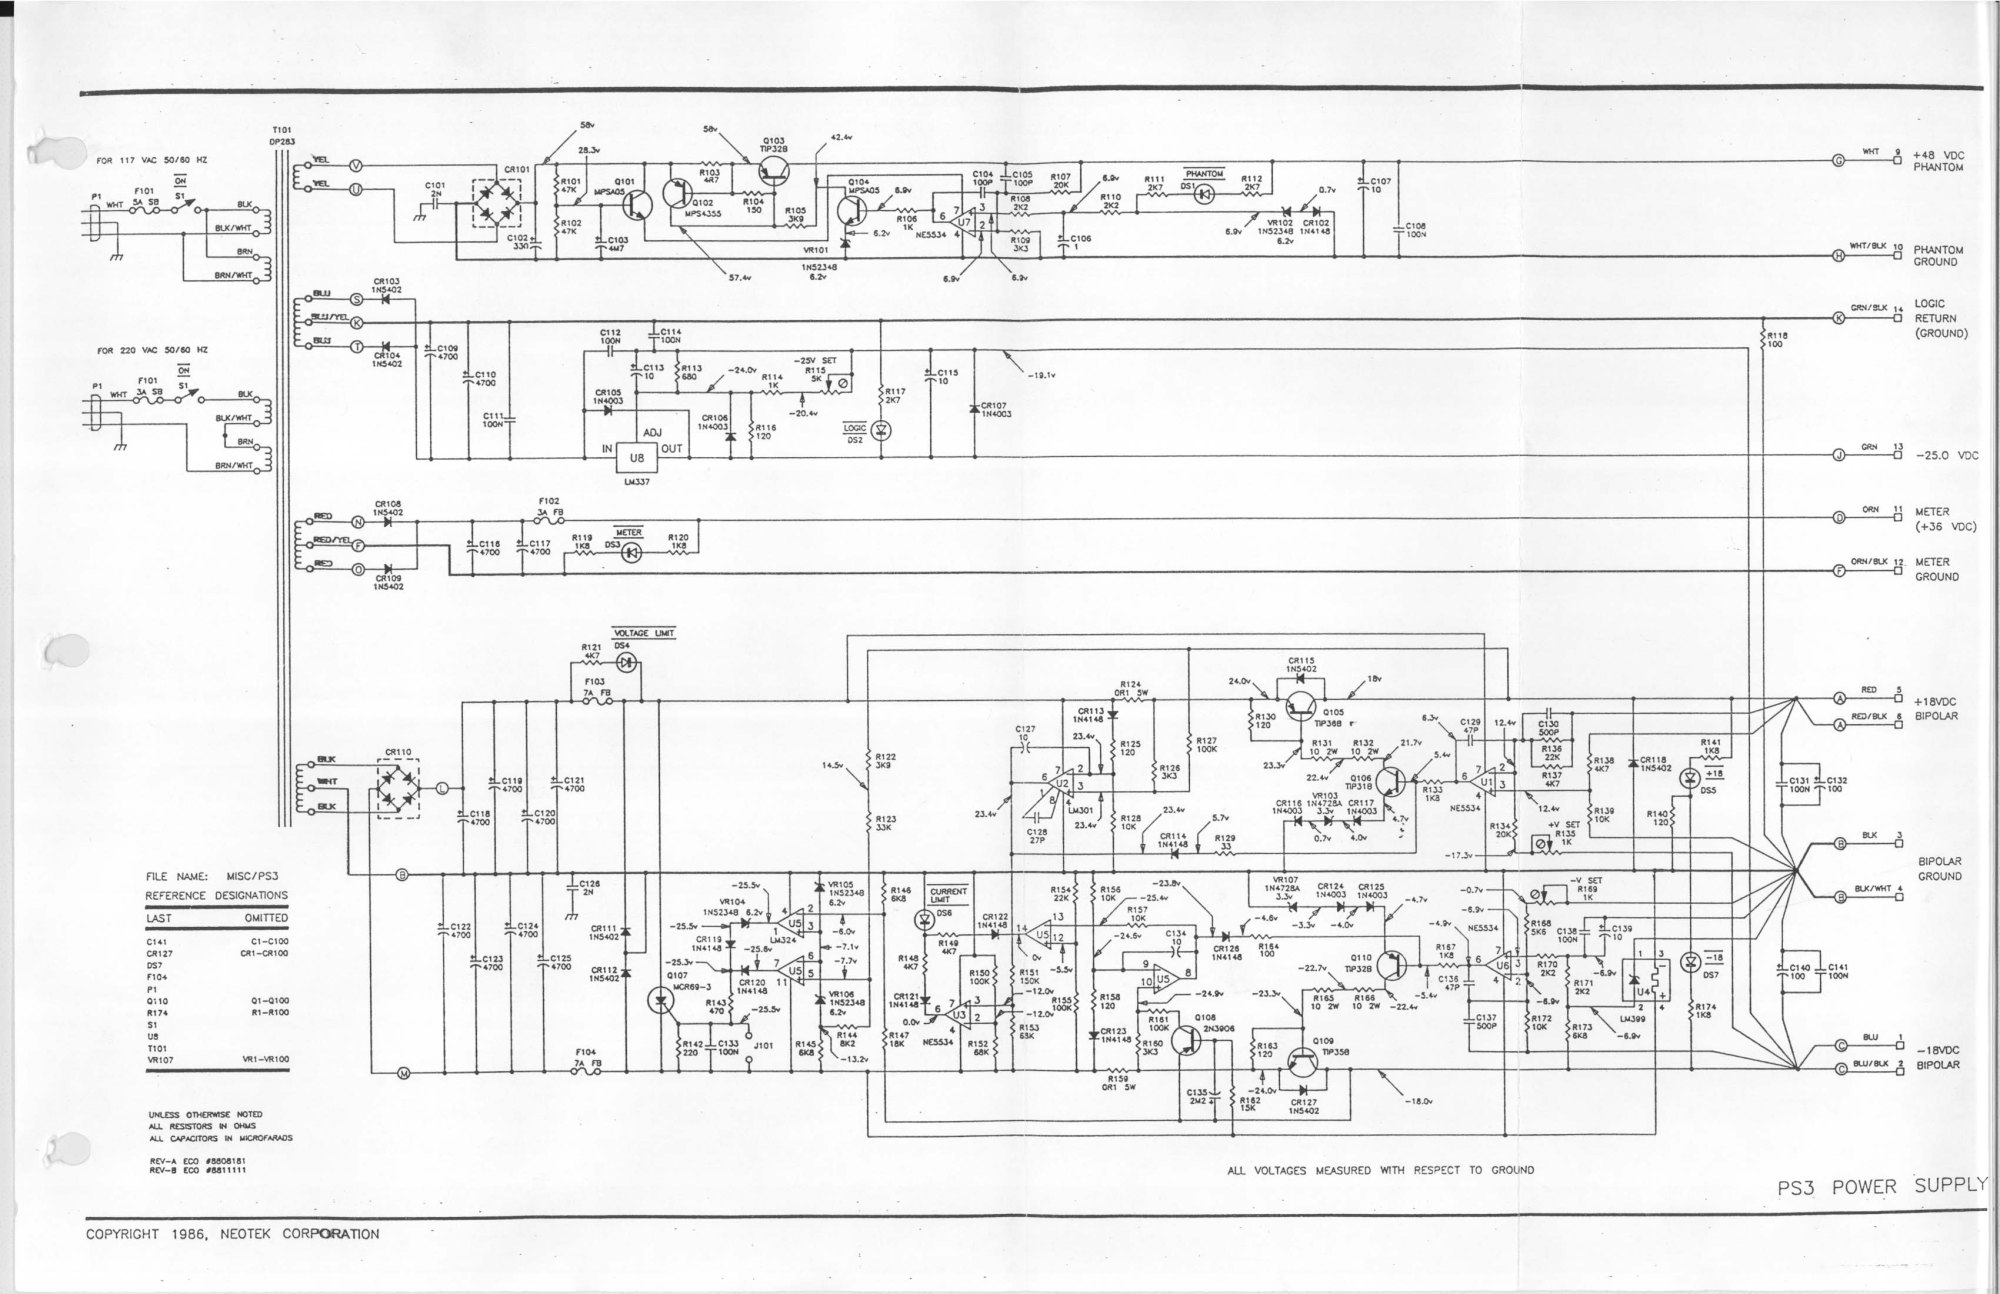 hight resolution of ps3 schematic diagram wiring schematic diagramplaystation 3 circuit diagram wiring block diagram iphone 4 schematic diagram